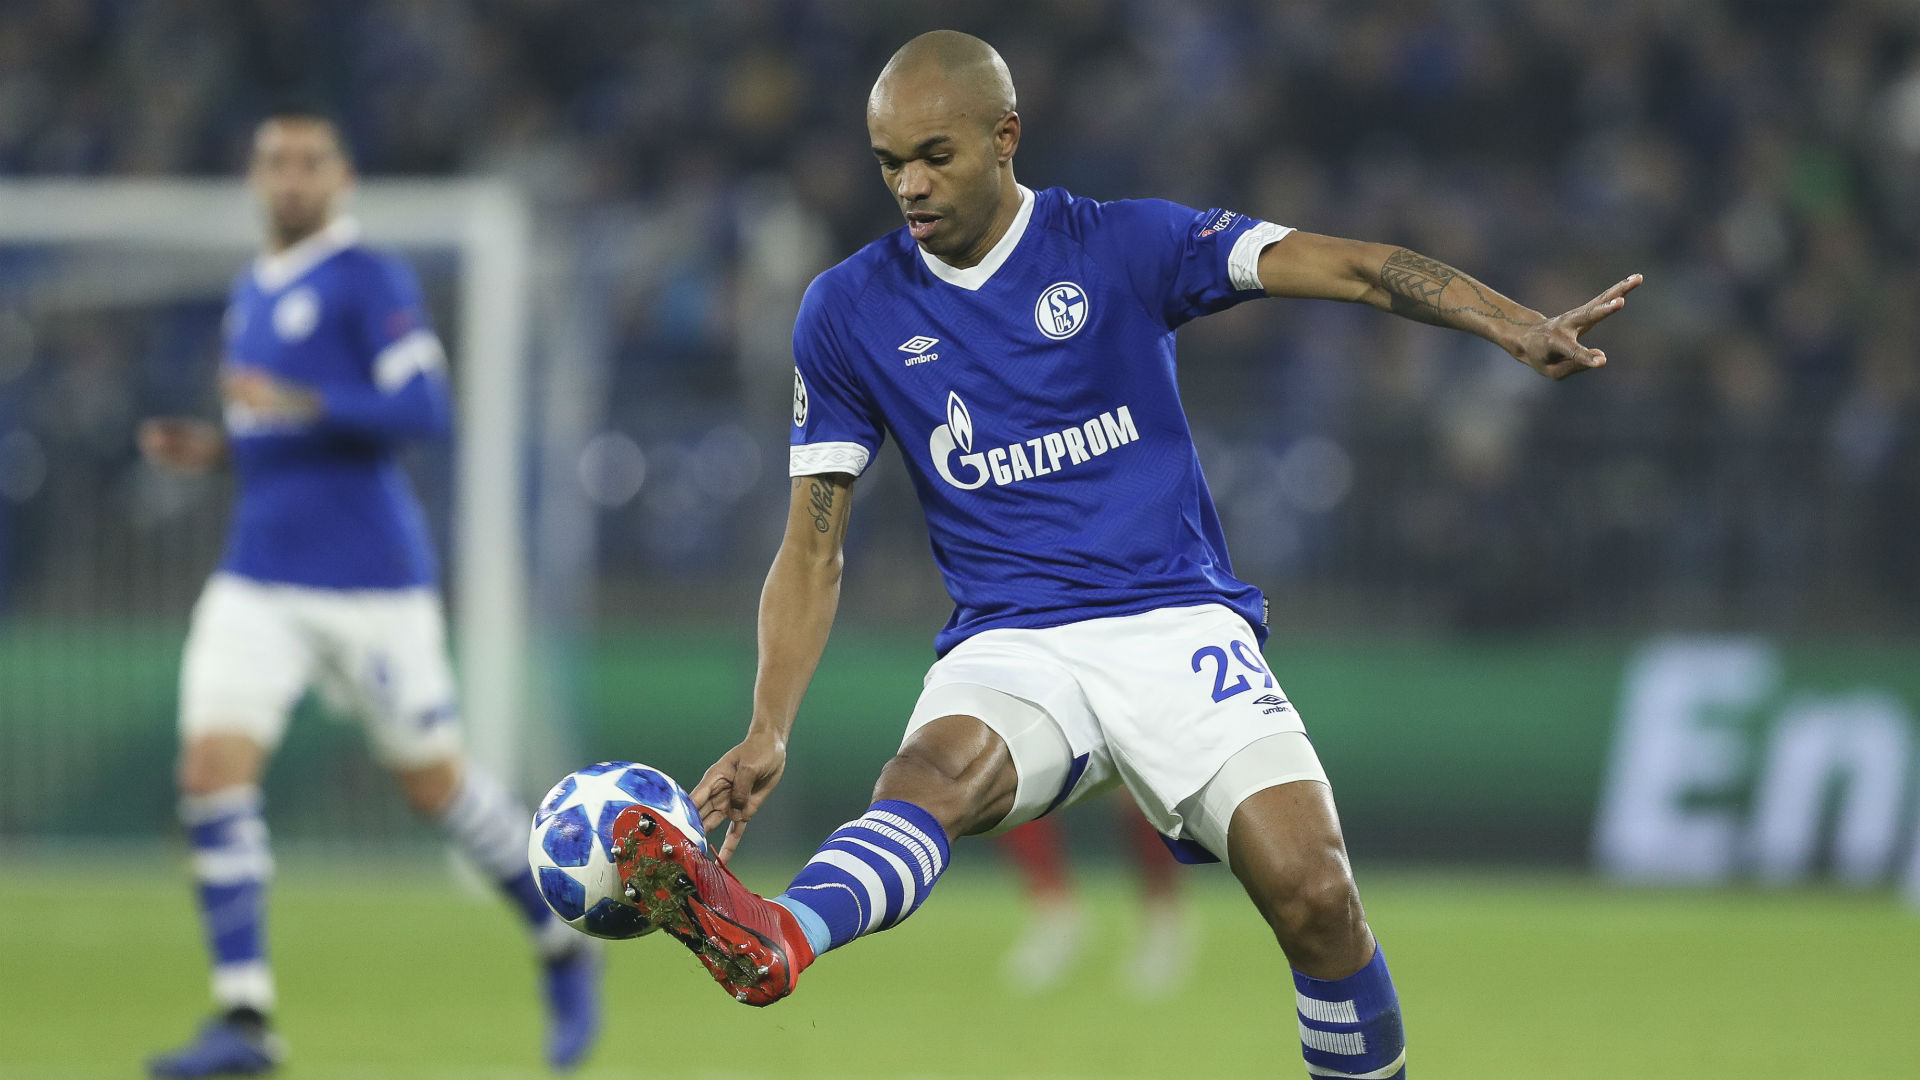 Struggling Monaco bring in Naldo from Schalke